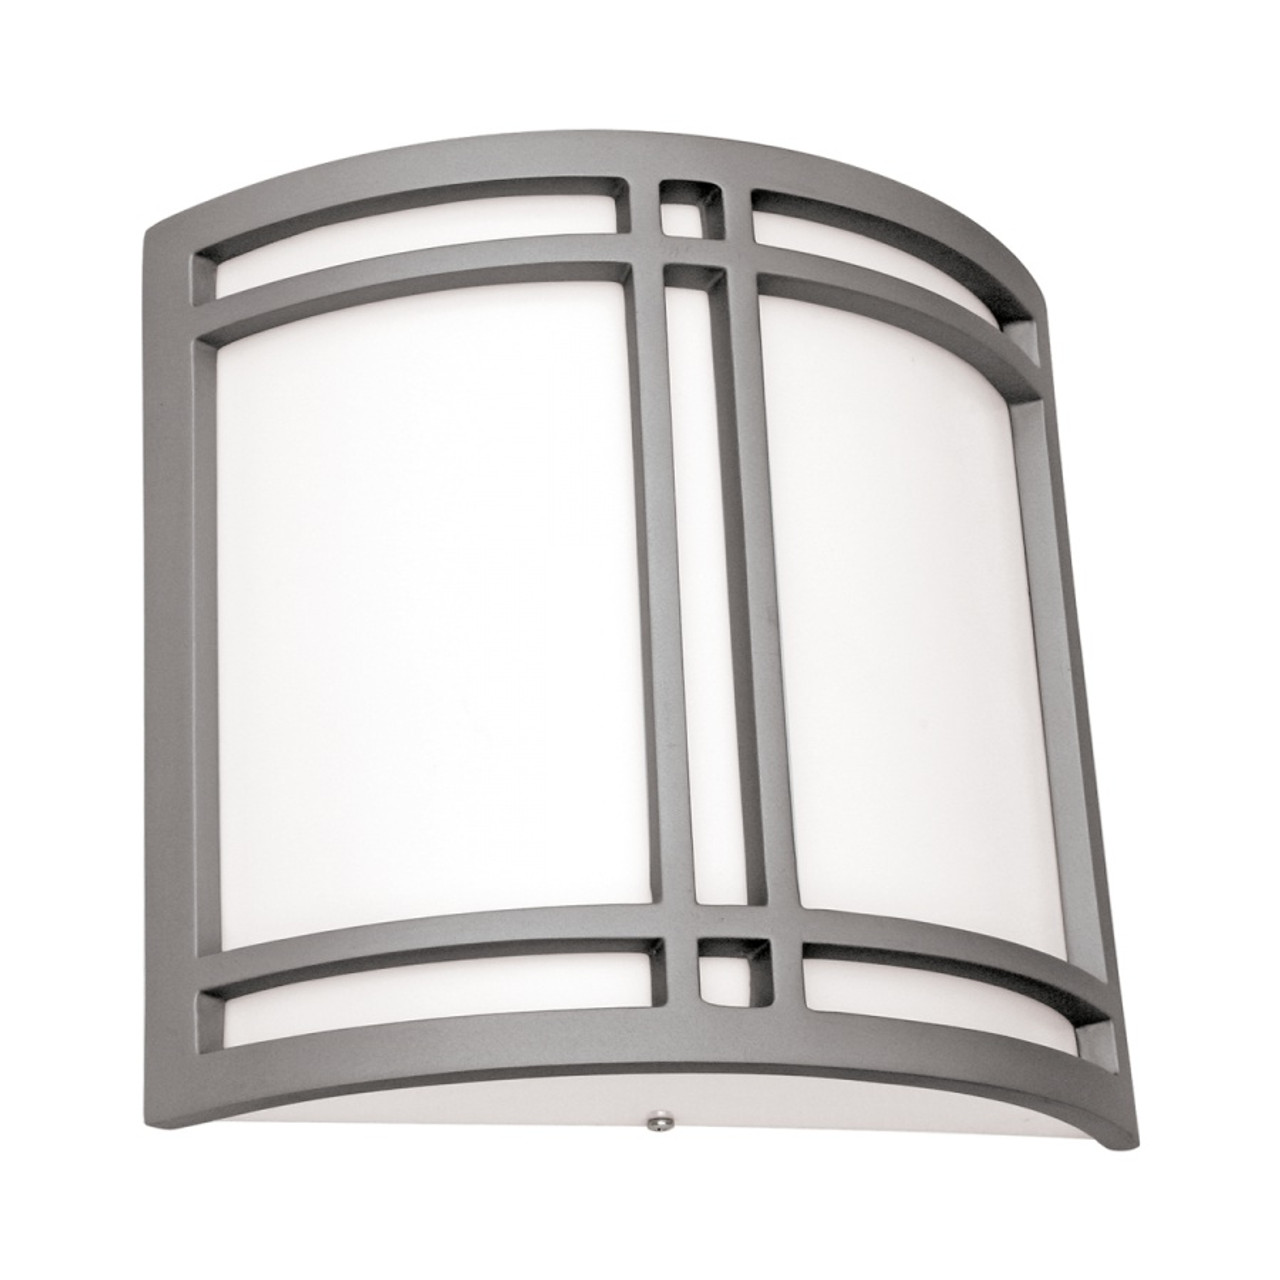 briteluxe LED-1375 Wall Sconce 6W, 12W